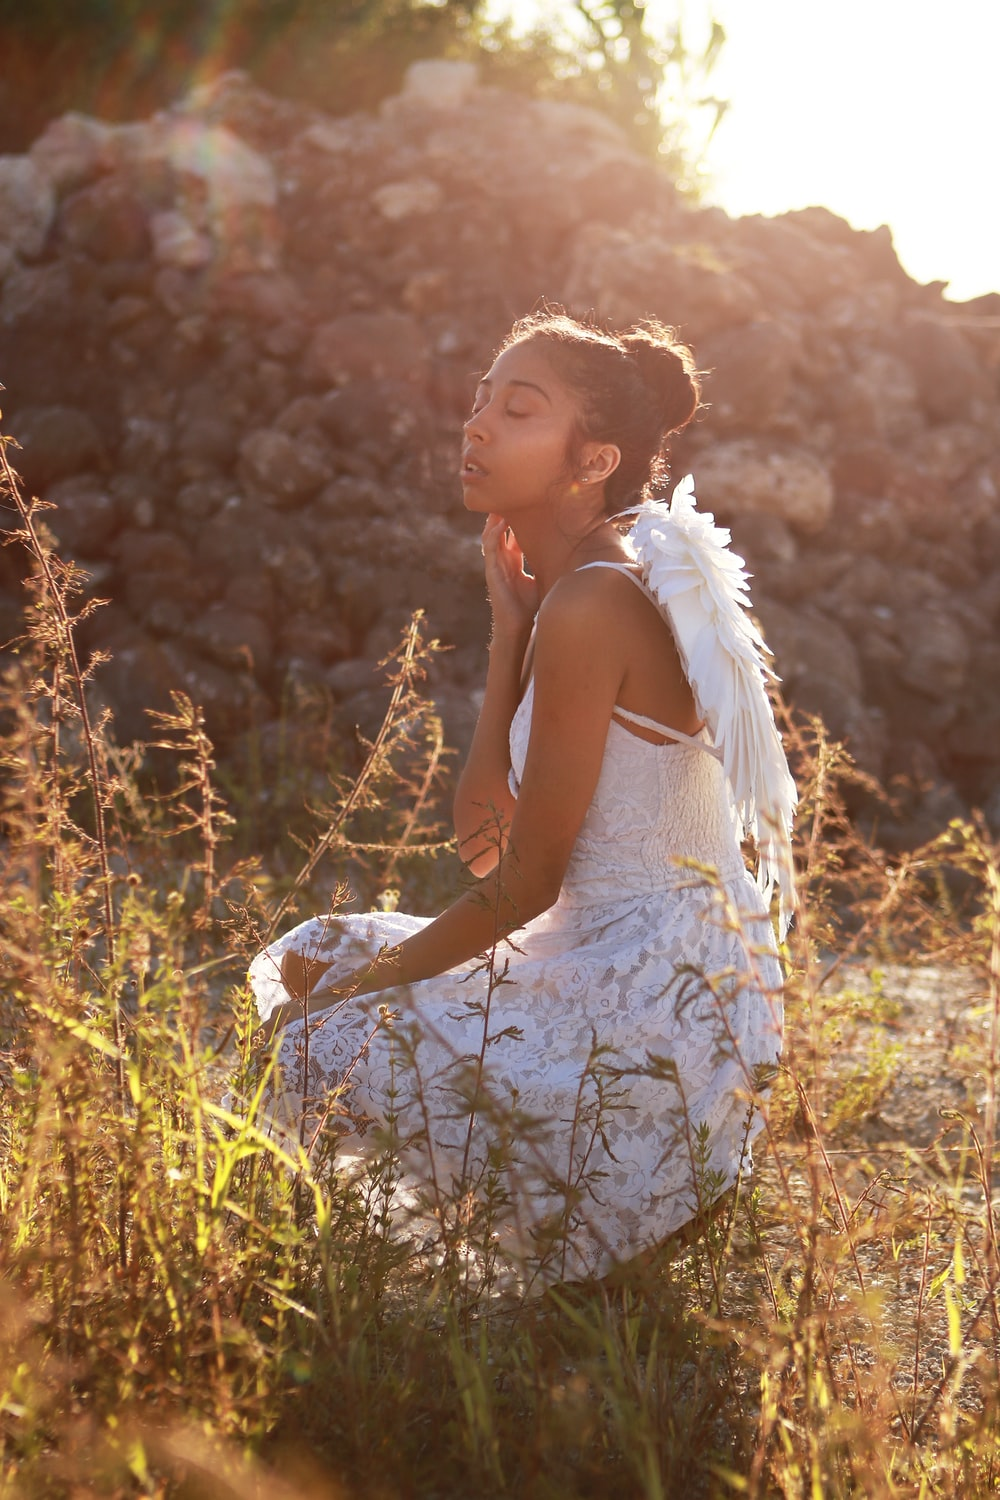 woman wearing white spaghetti strap dress with wings touching her neck while sitting near green field during daytime